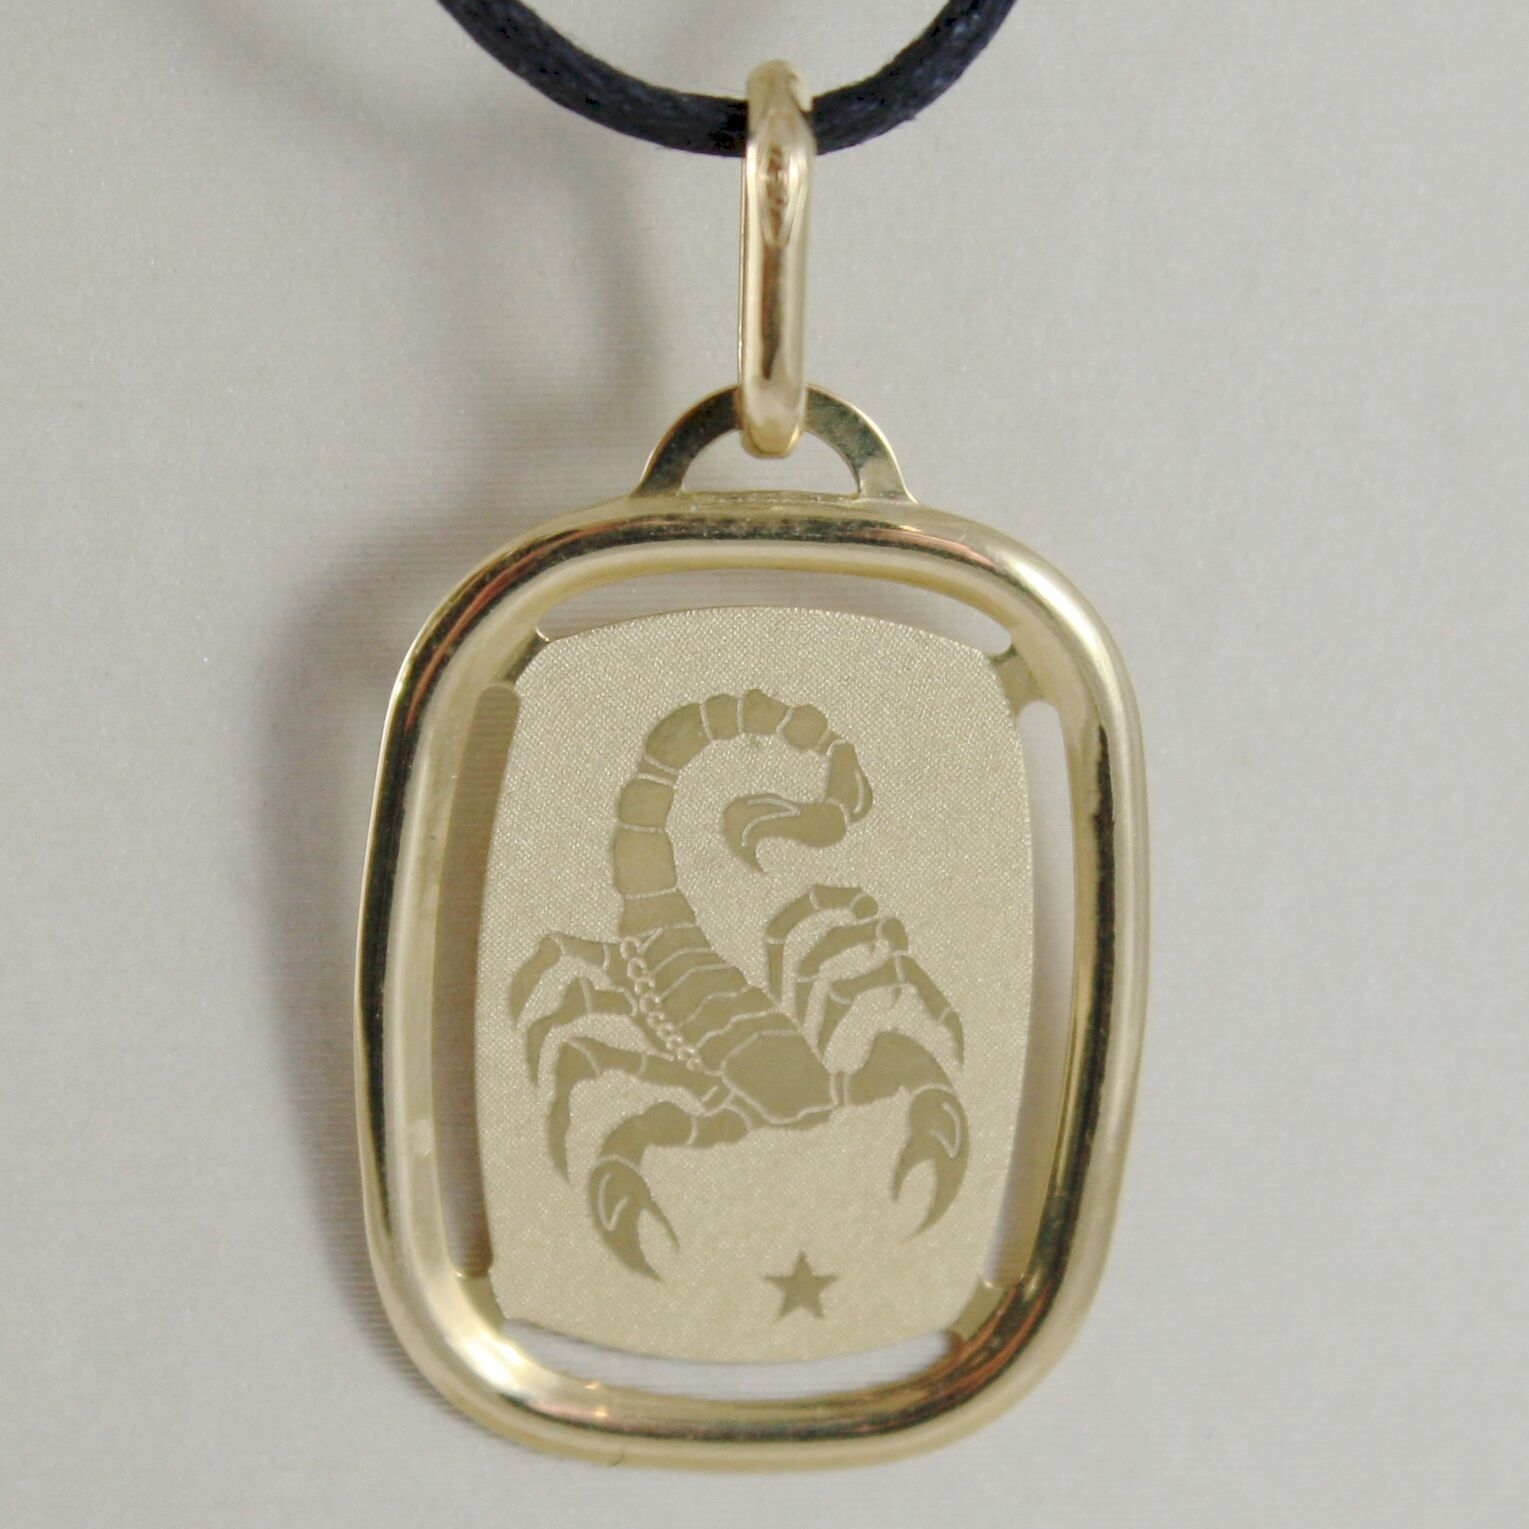 SOLID 18K YELLOW GOLD SCORPIO ZODIAC SIGN MEDAL PENDANT, ZODIACAL, MADE IN ITALY